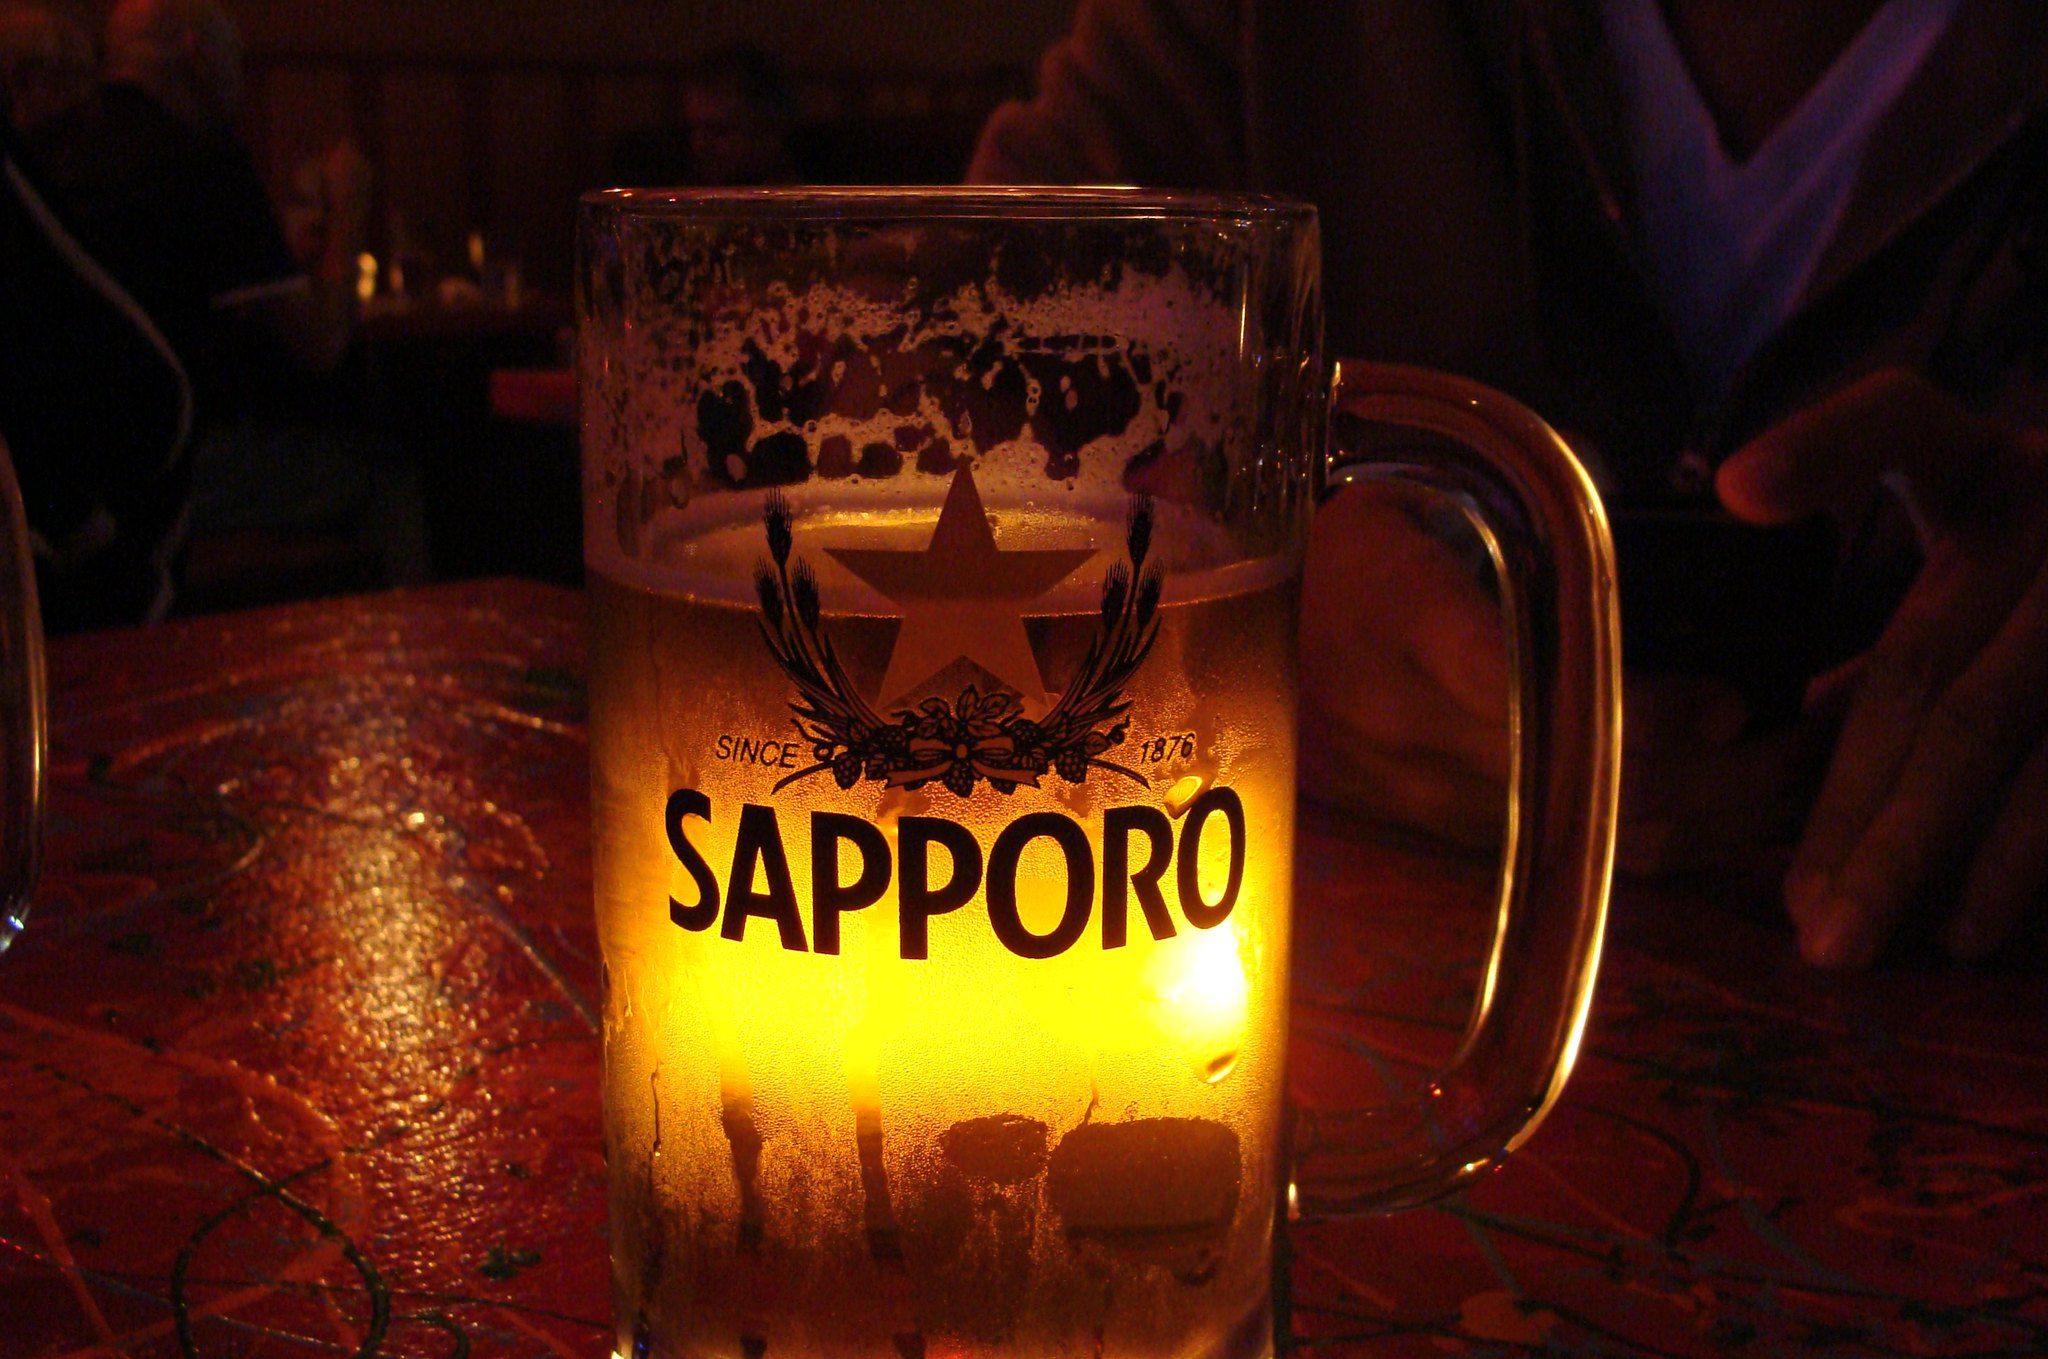 10 Things to do in Sapporo, Japan